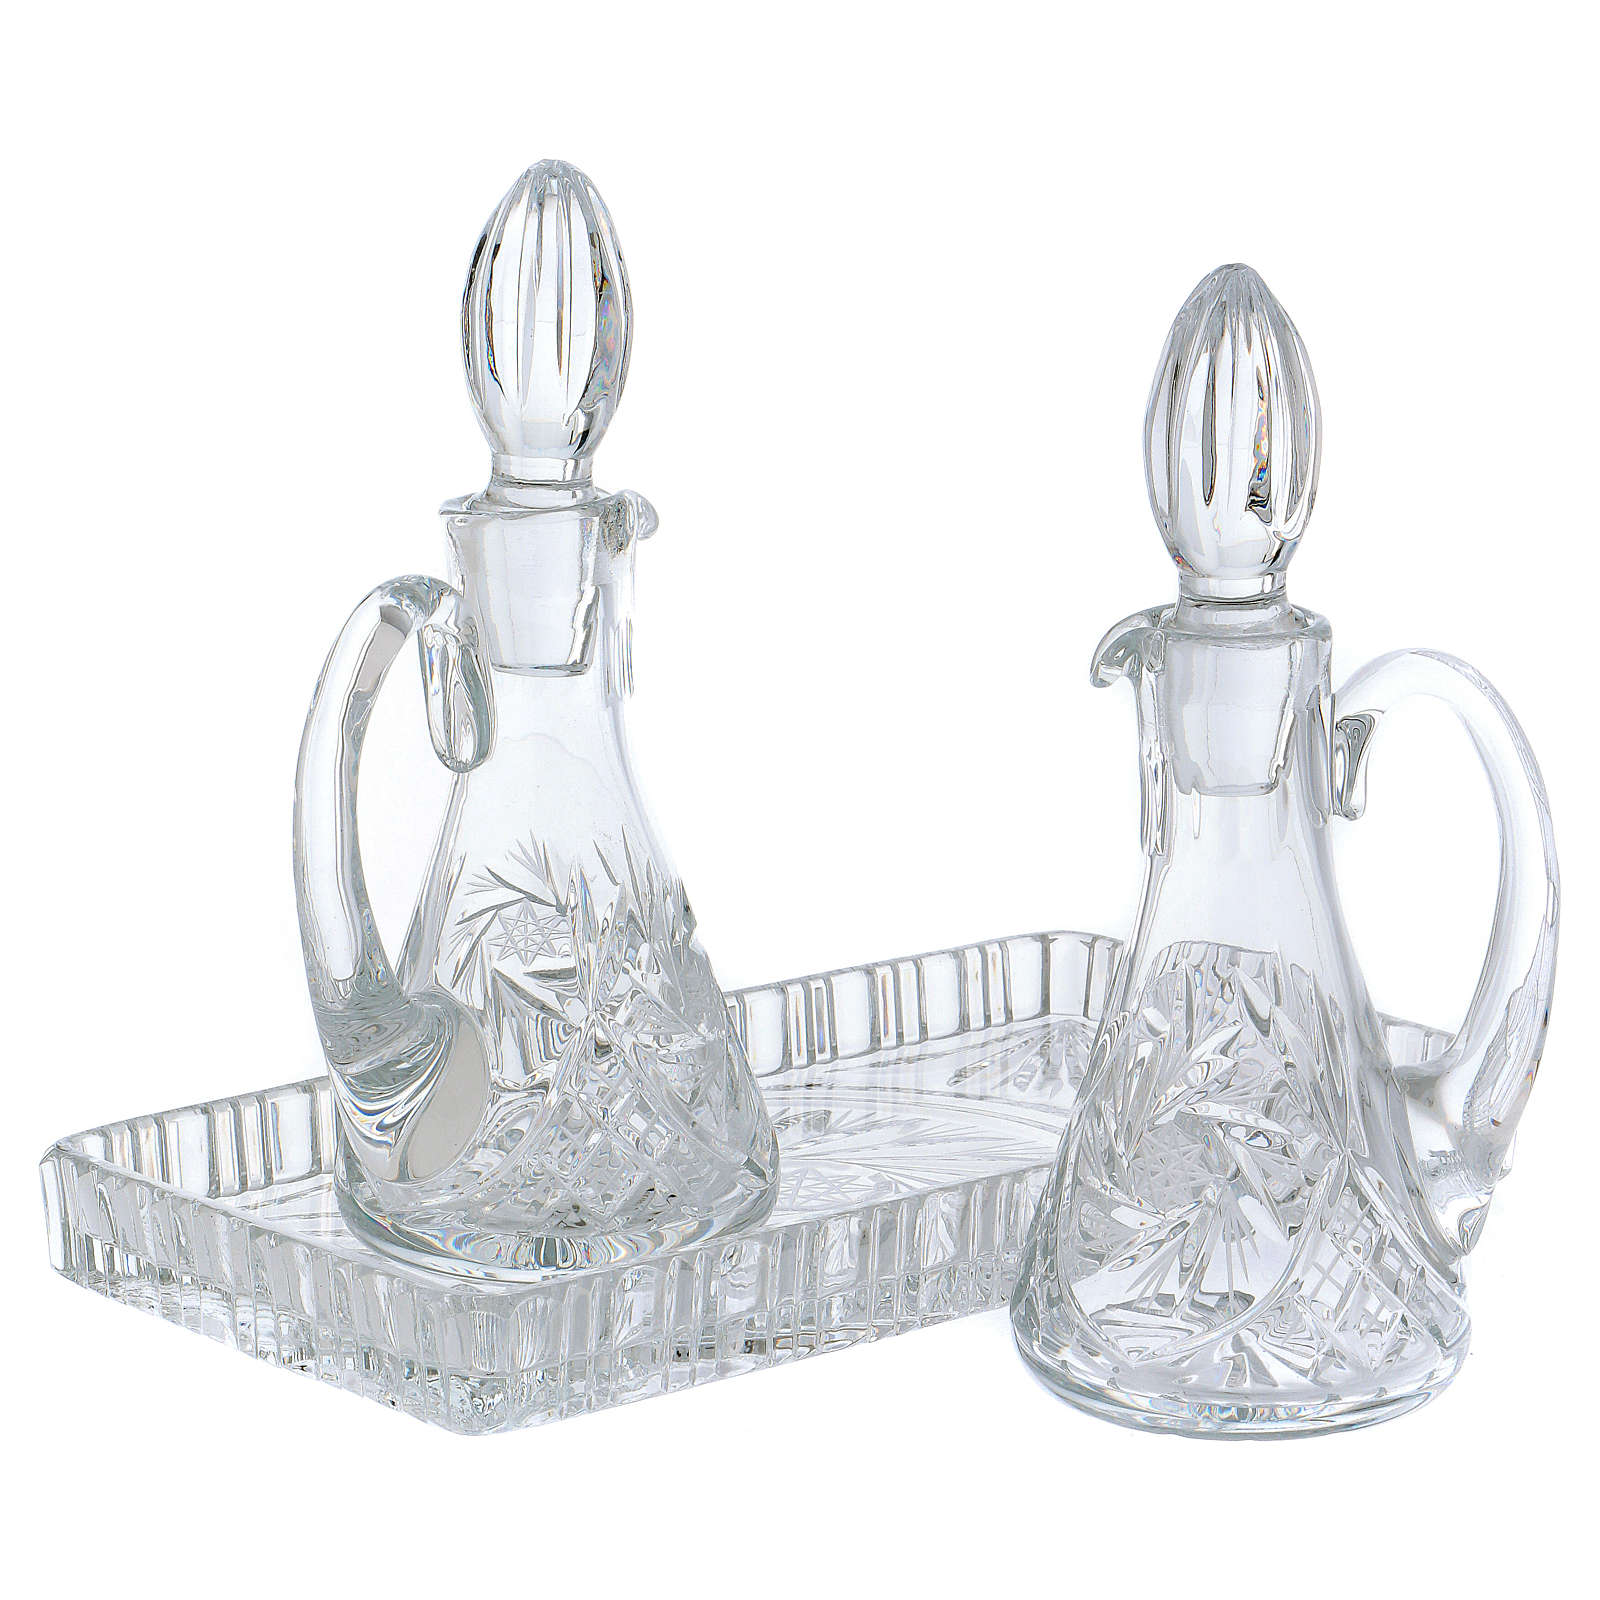 Cruet set for mass in crystal with rectangular carrying tray 4